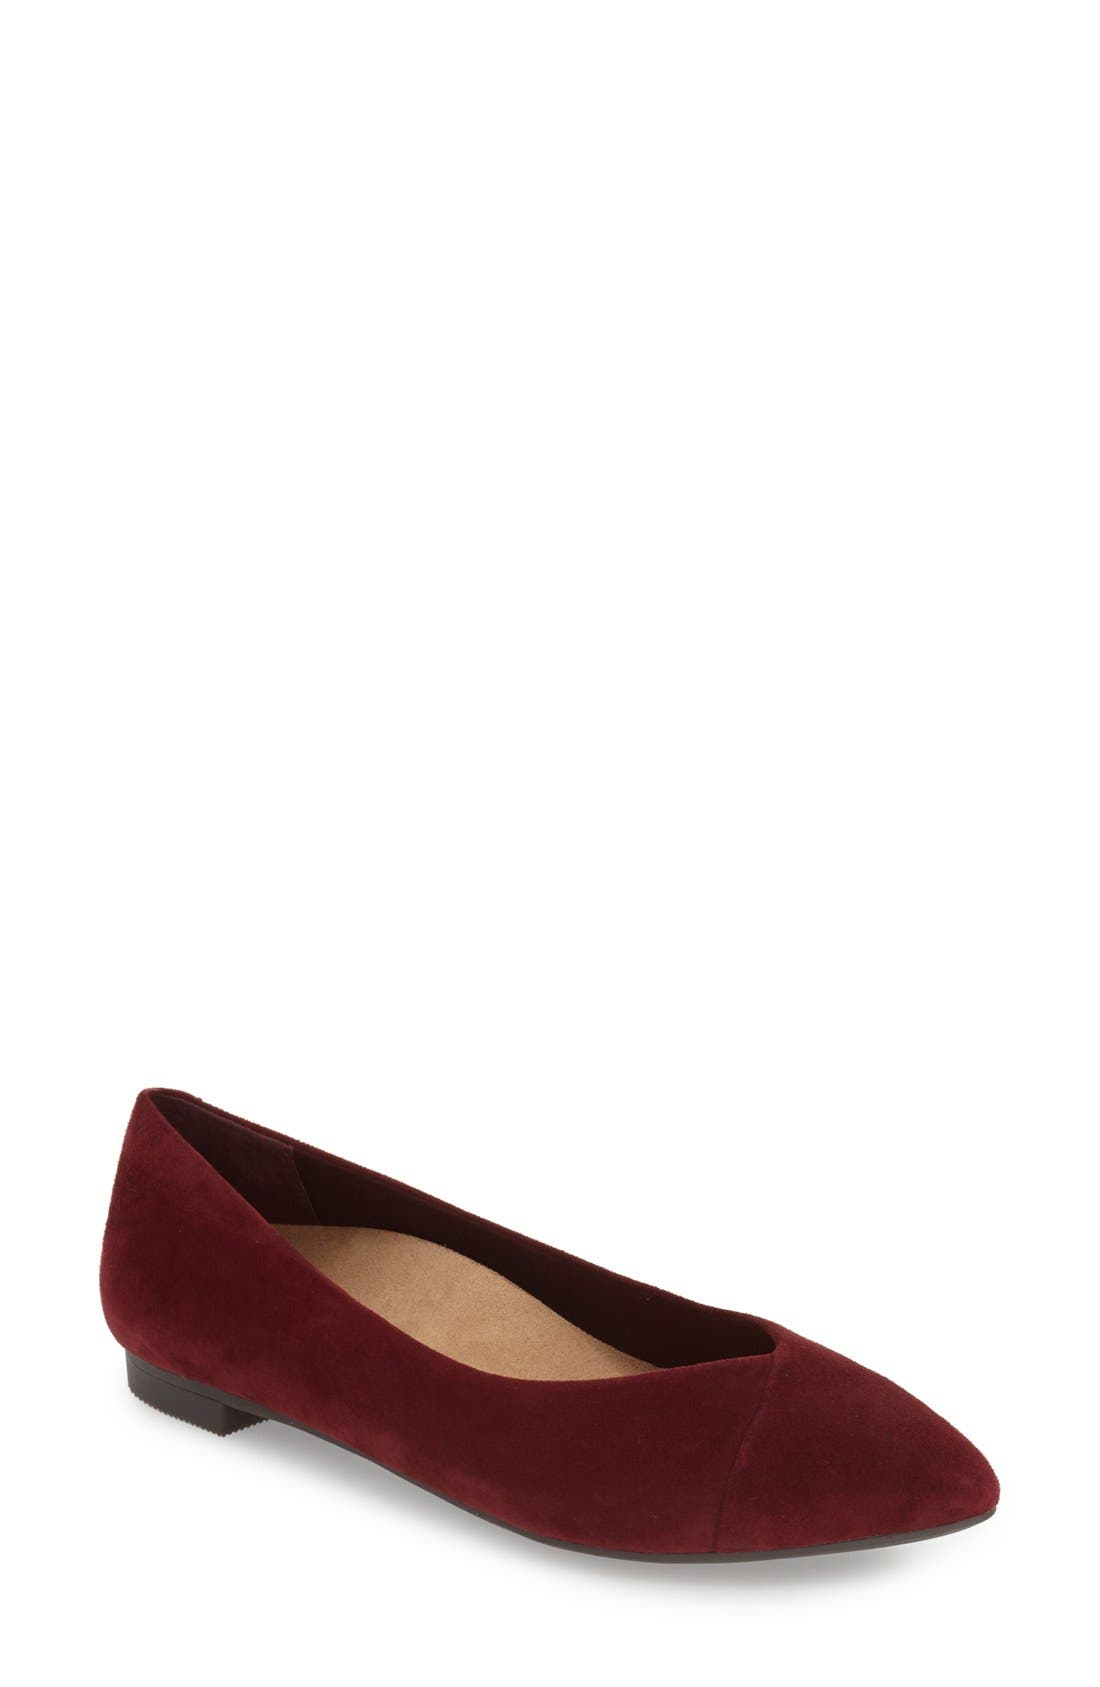 'Caballo' Pointy Toe Flat,                         Main,                         color, Merlot Suede